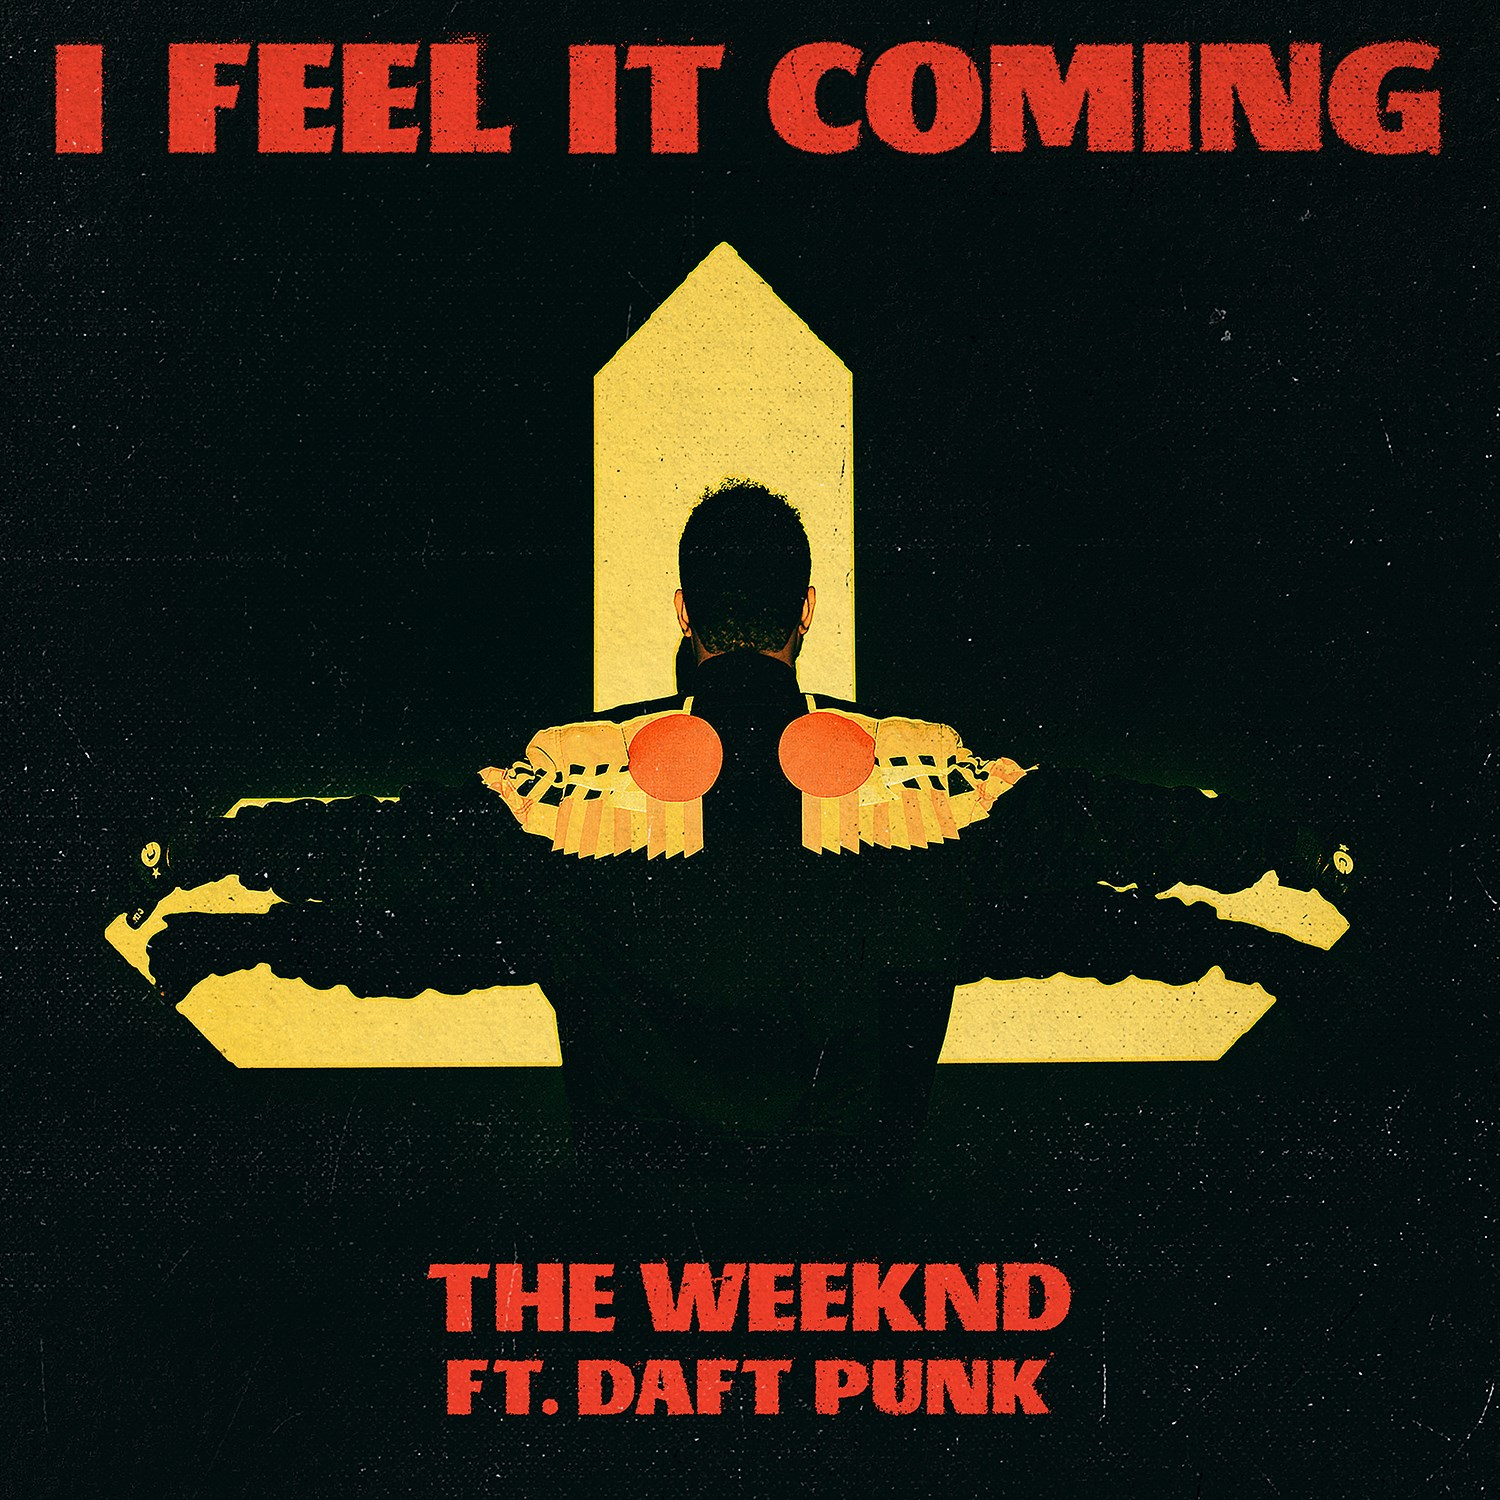 the-weeknd-i-feel-it-coming-2016-1500x1500